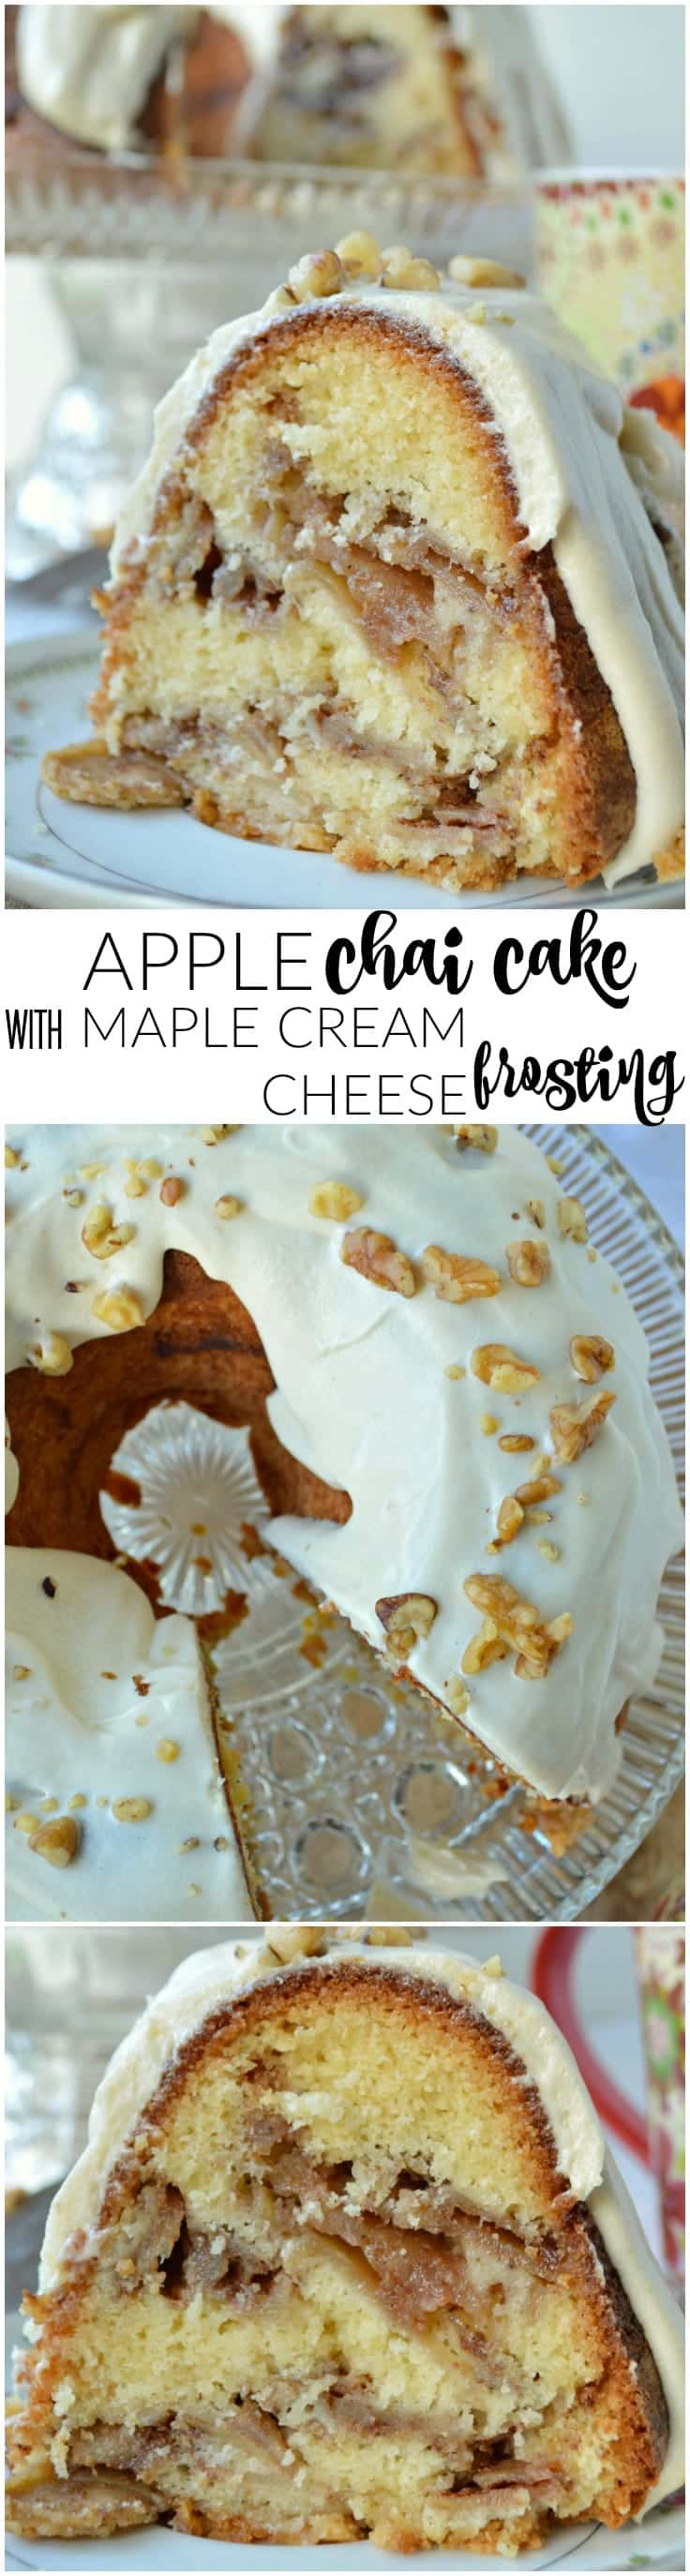 A dreamy Jewish apple cake with a spicy chai-inspired twist! This Apple Chai Cake is fall dessert perfection.